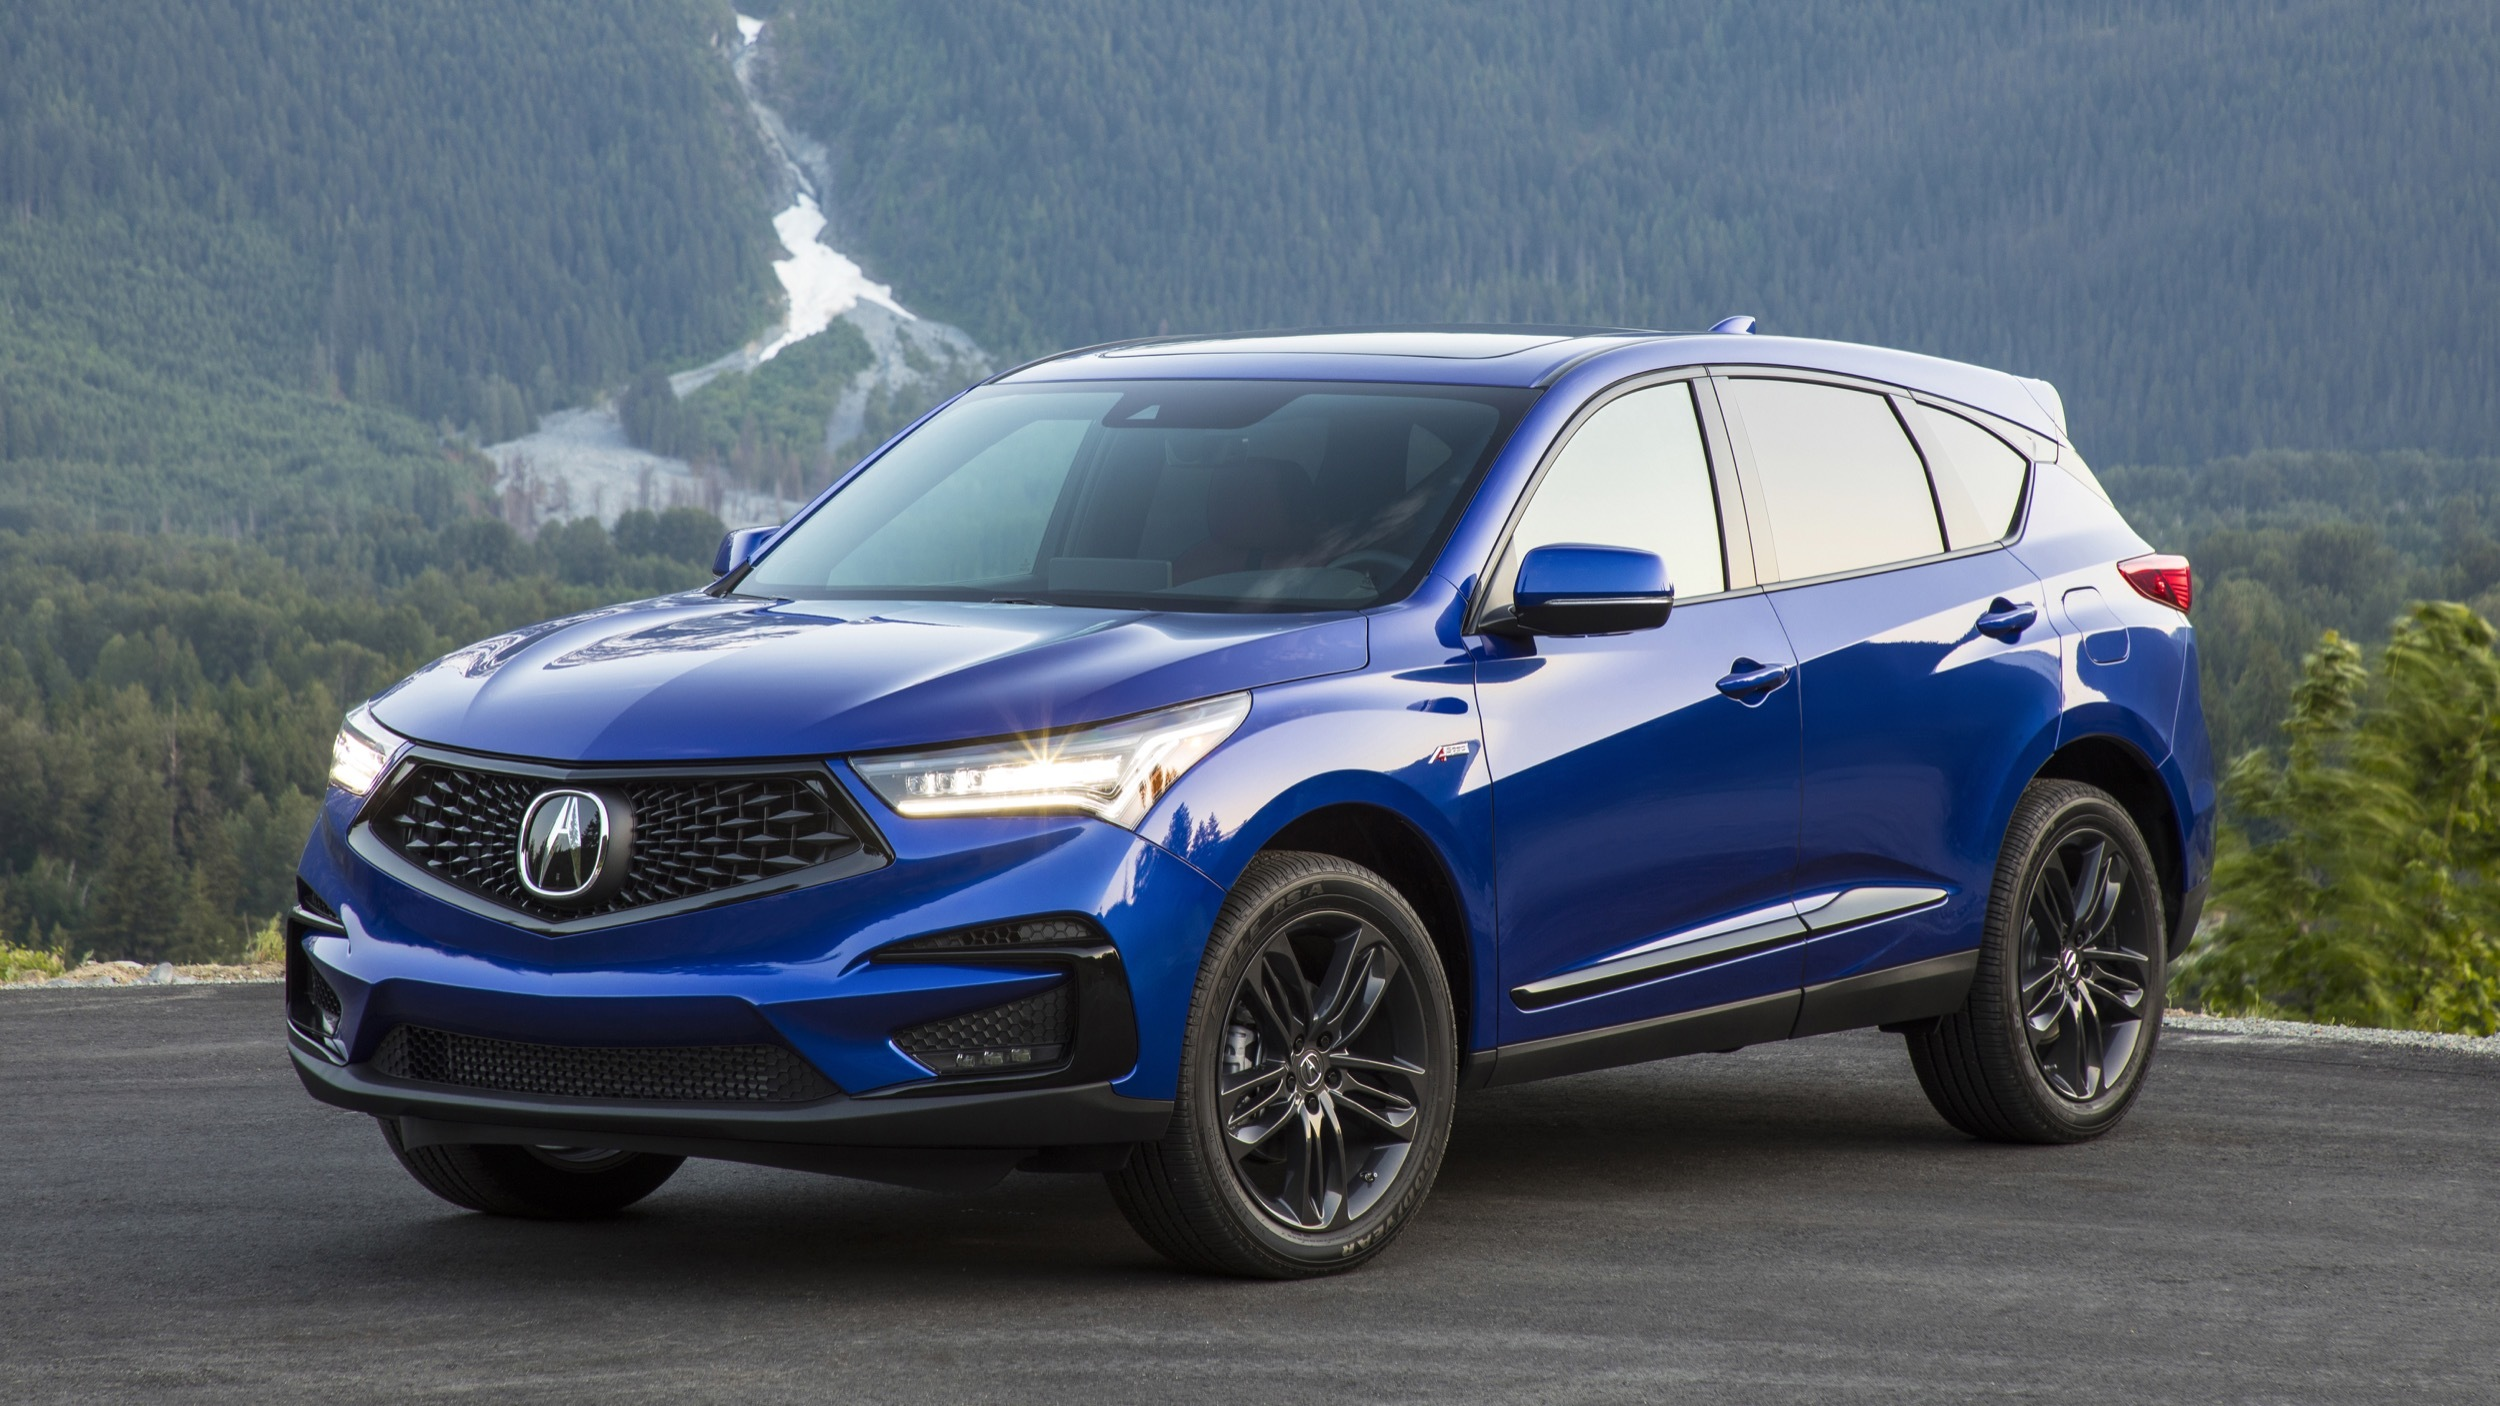 Acura Certified Pre-Owned >> 2019 Acura RDX gets mid-range power, torque gains from Hondata | Autoblog